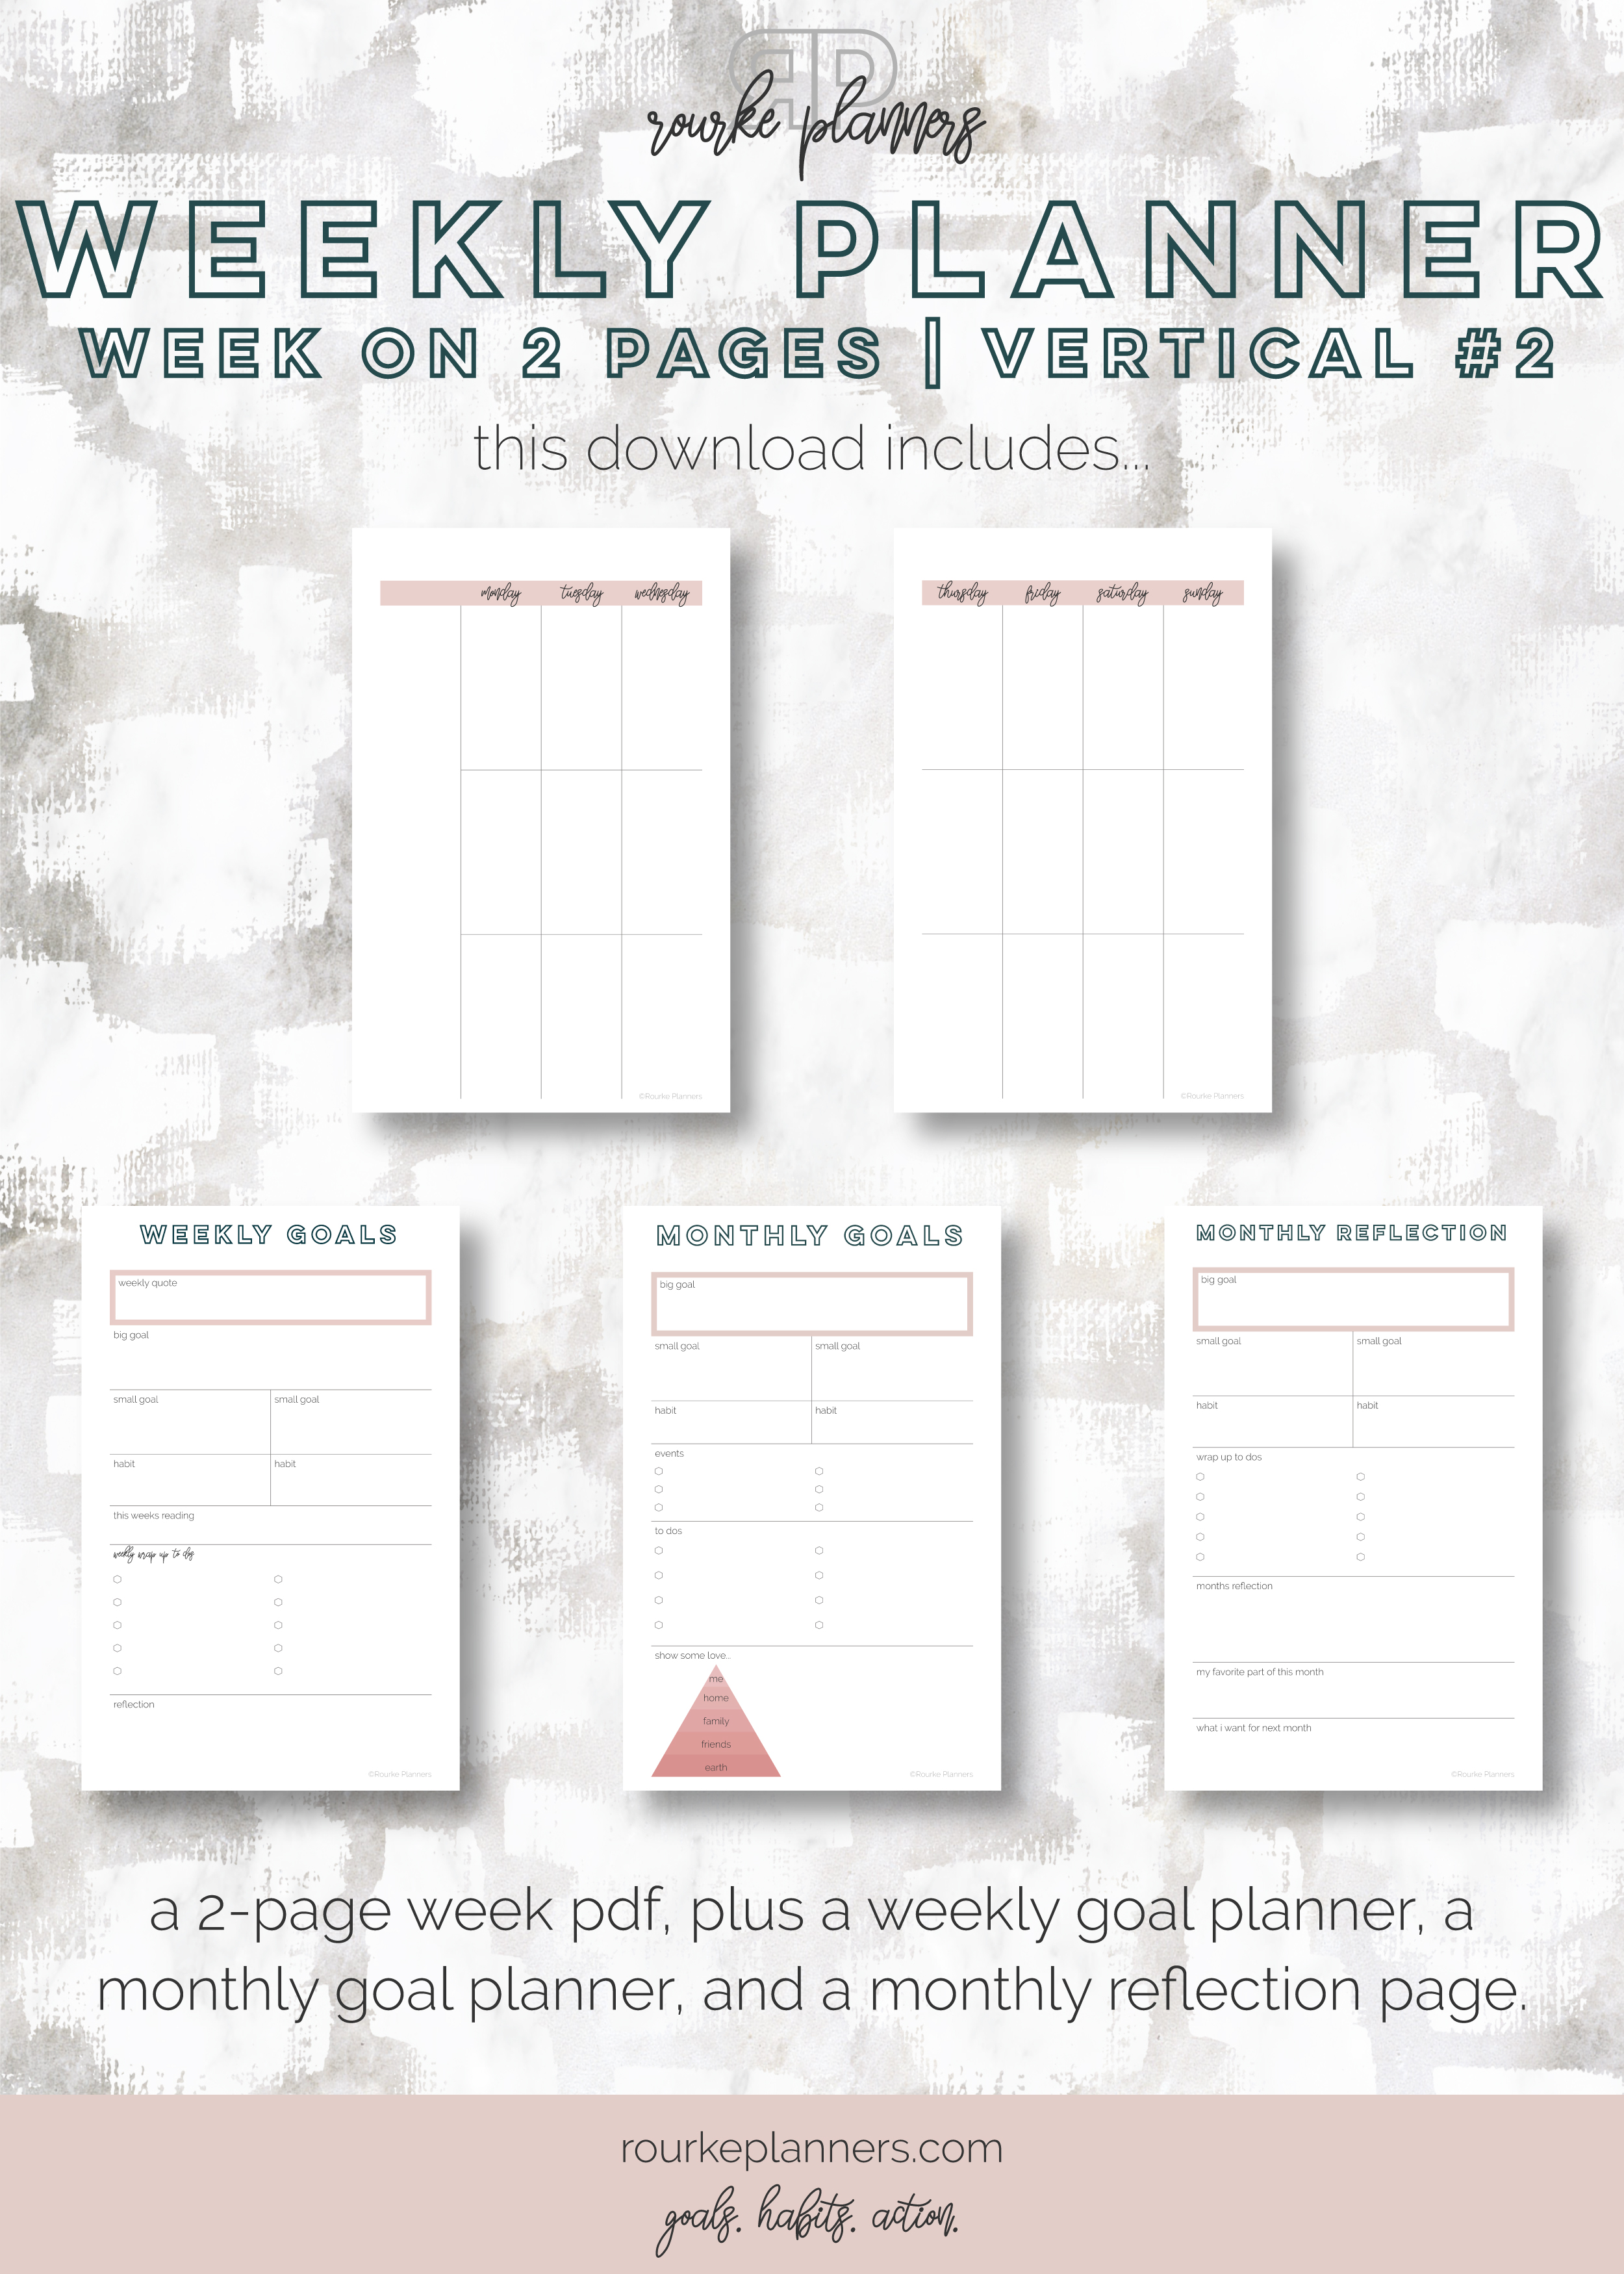 Weekly Vertical Planner #2   Half Letter Size, OG Style, Undated   Rourke Planners